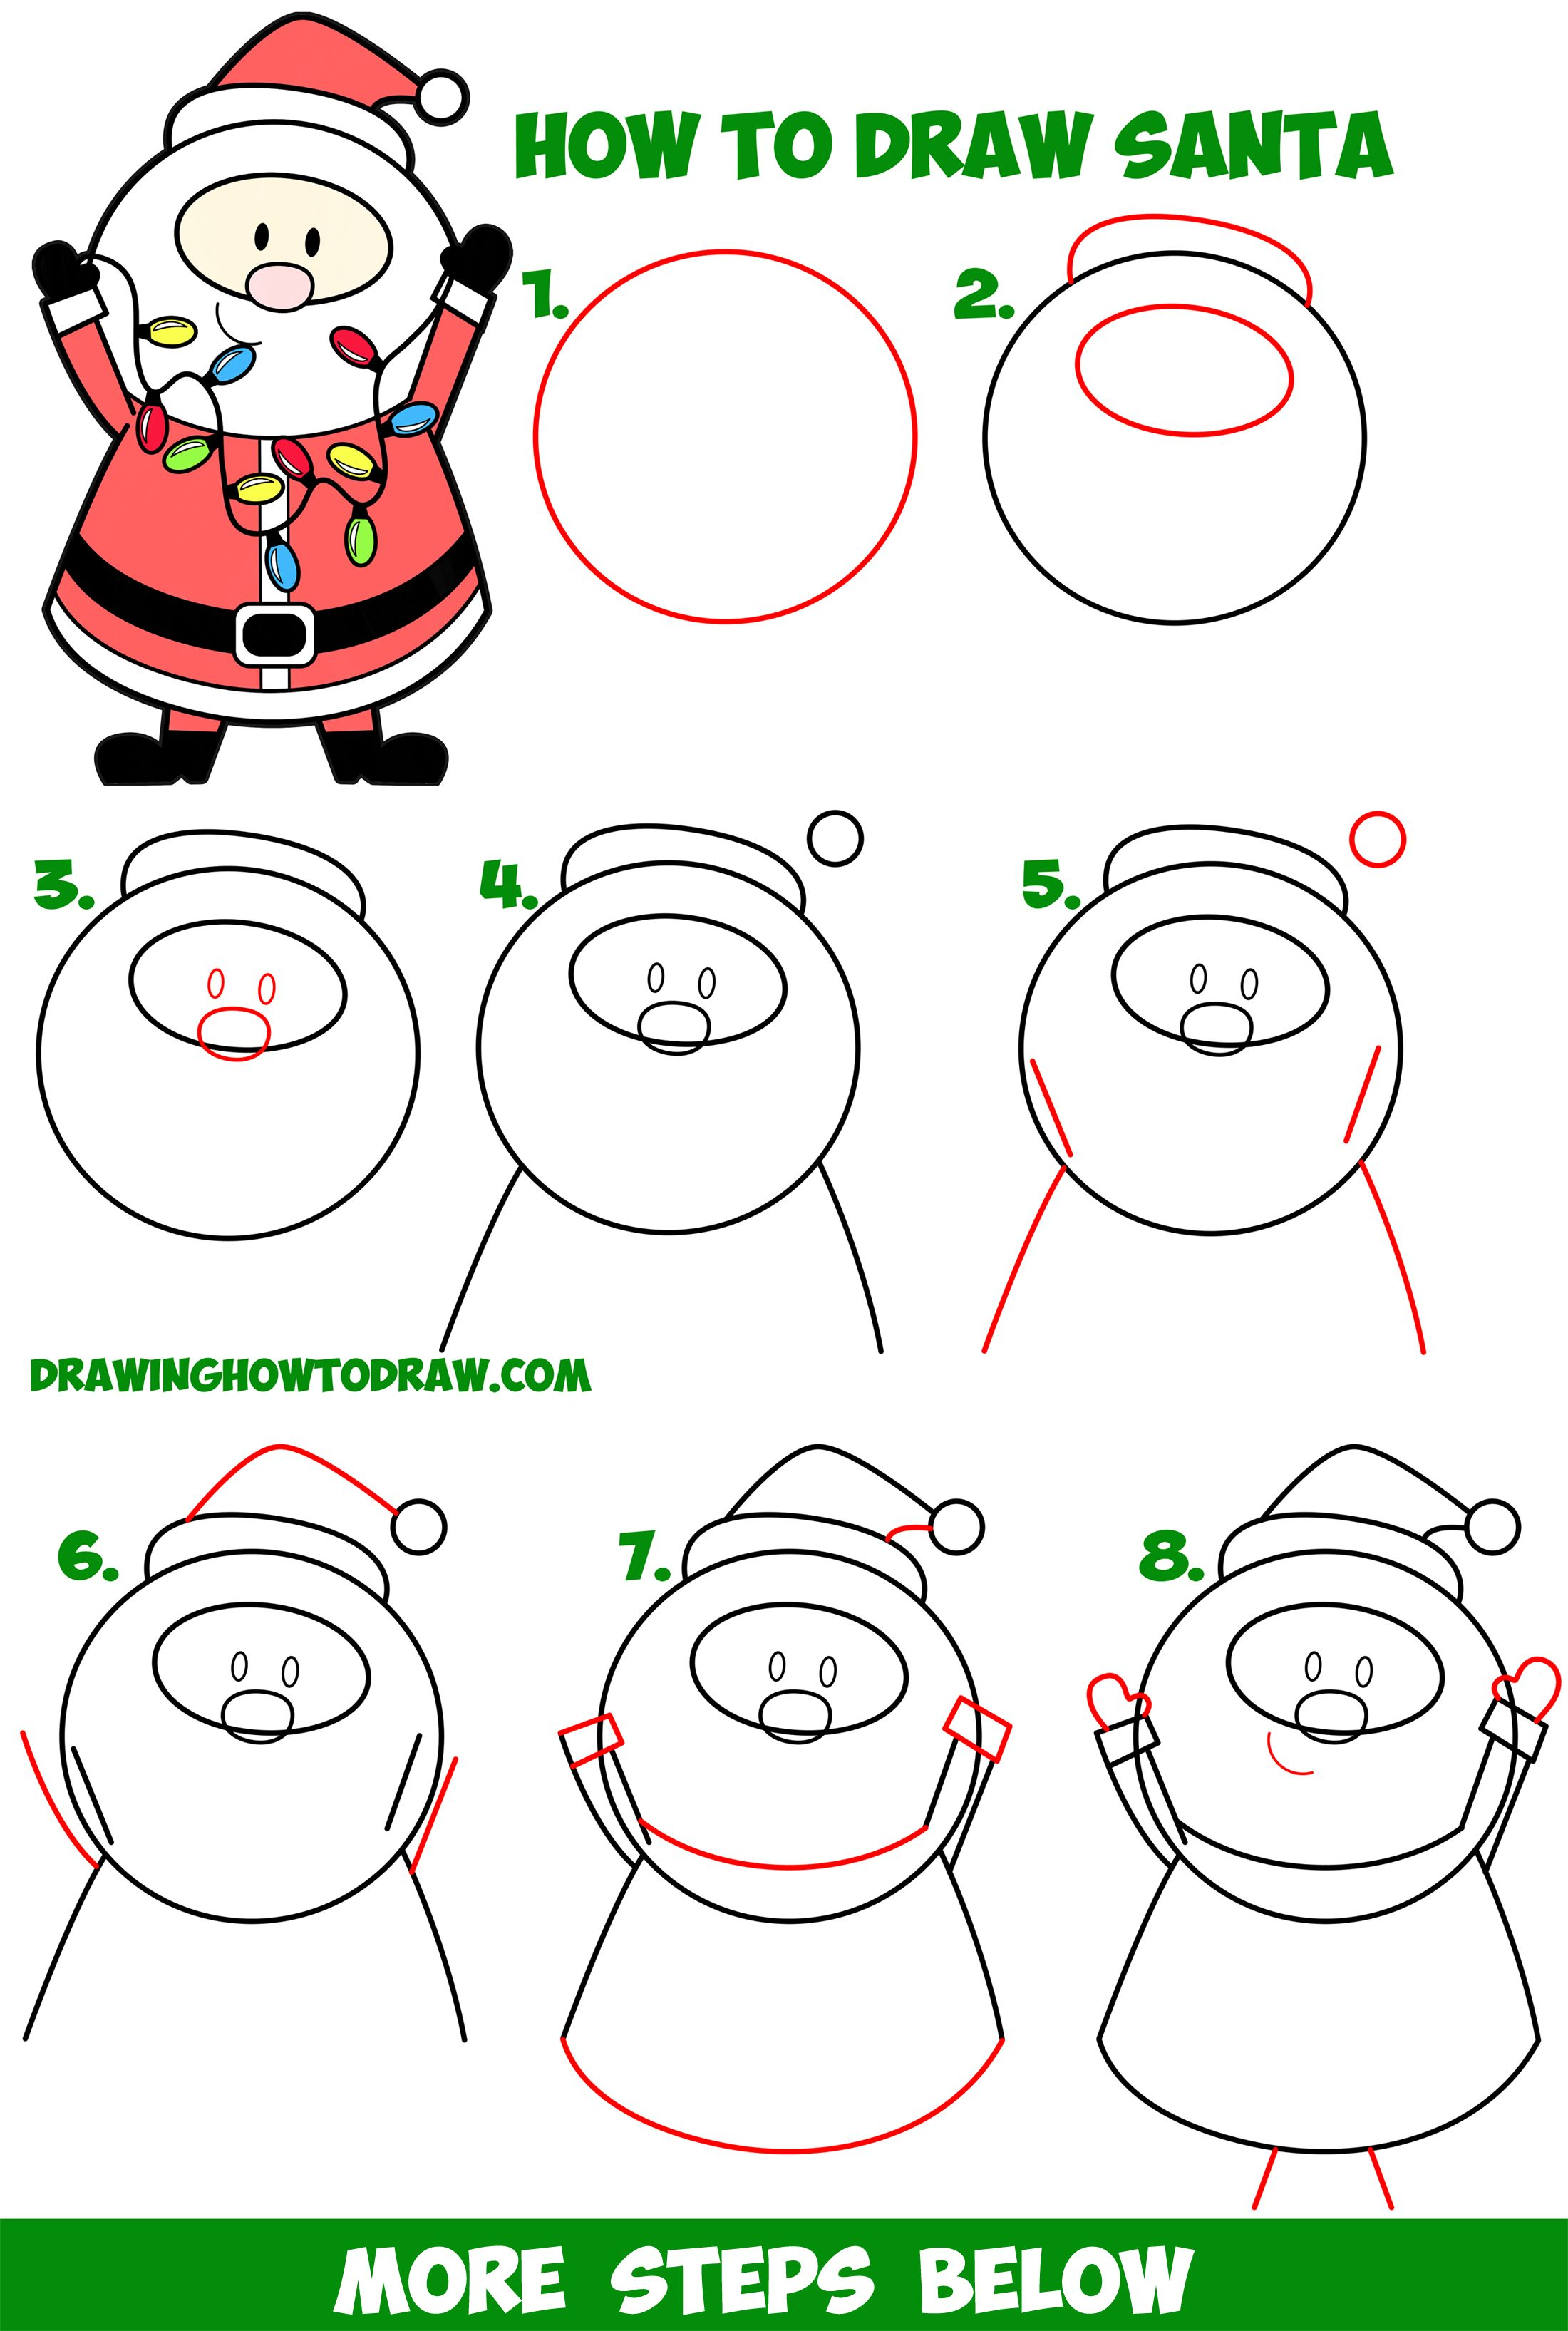 How to Draw Santa Claus Holding Christmas Lights Easy Step